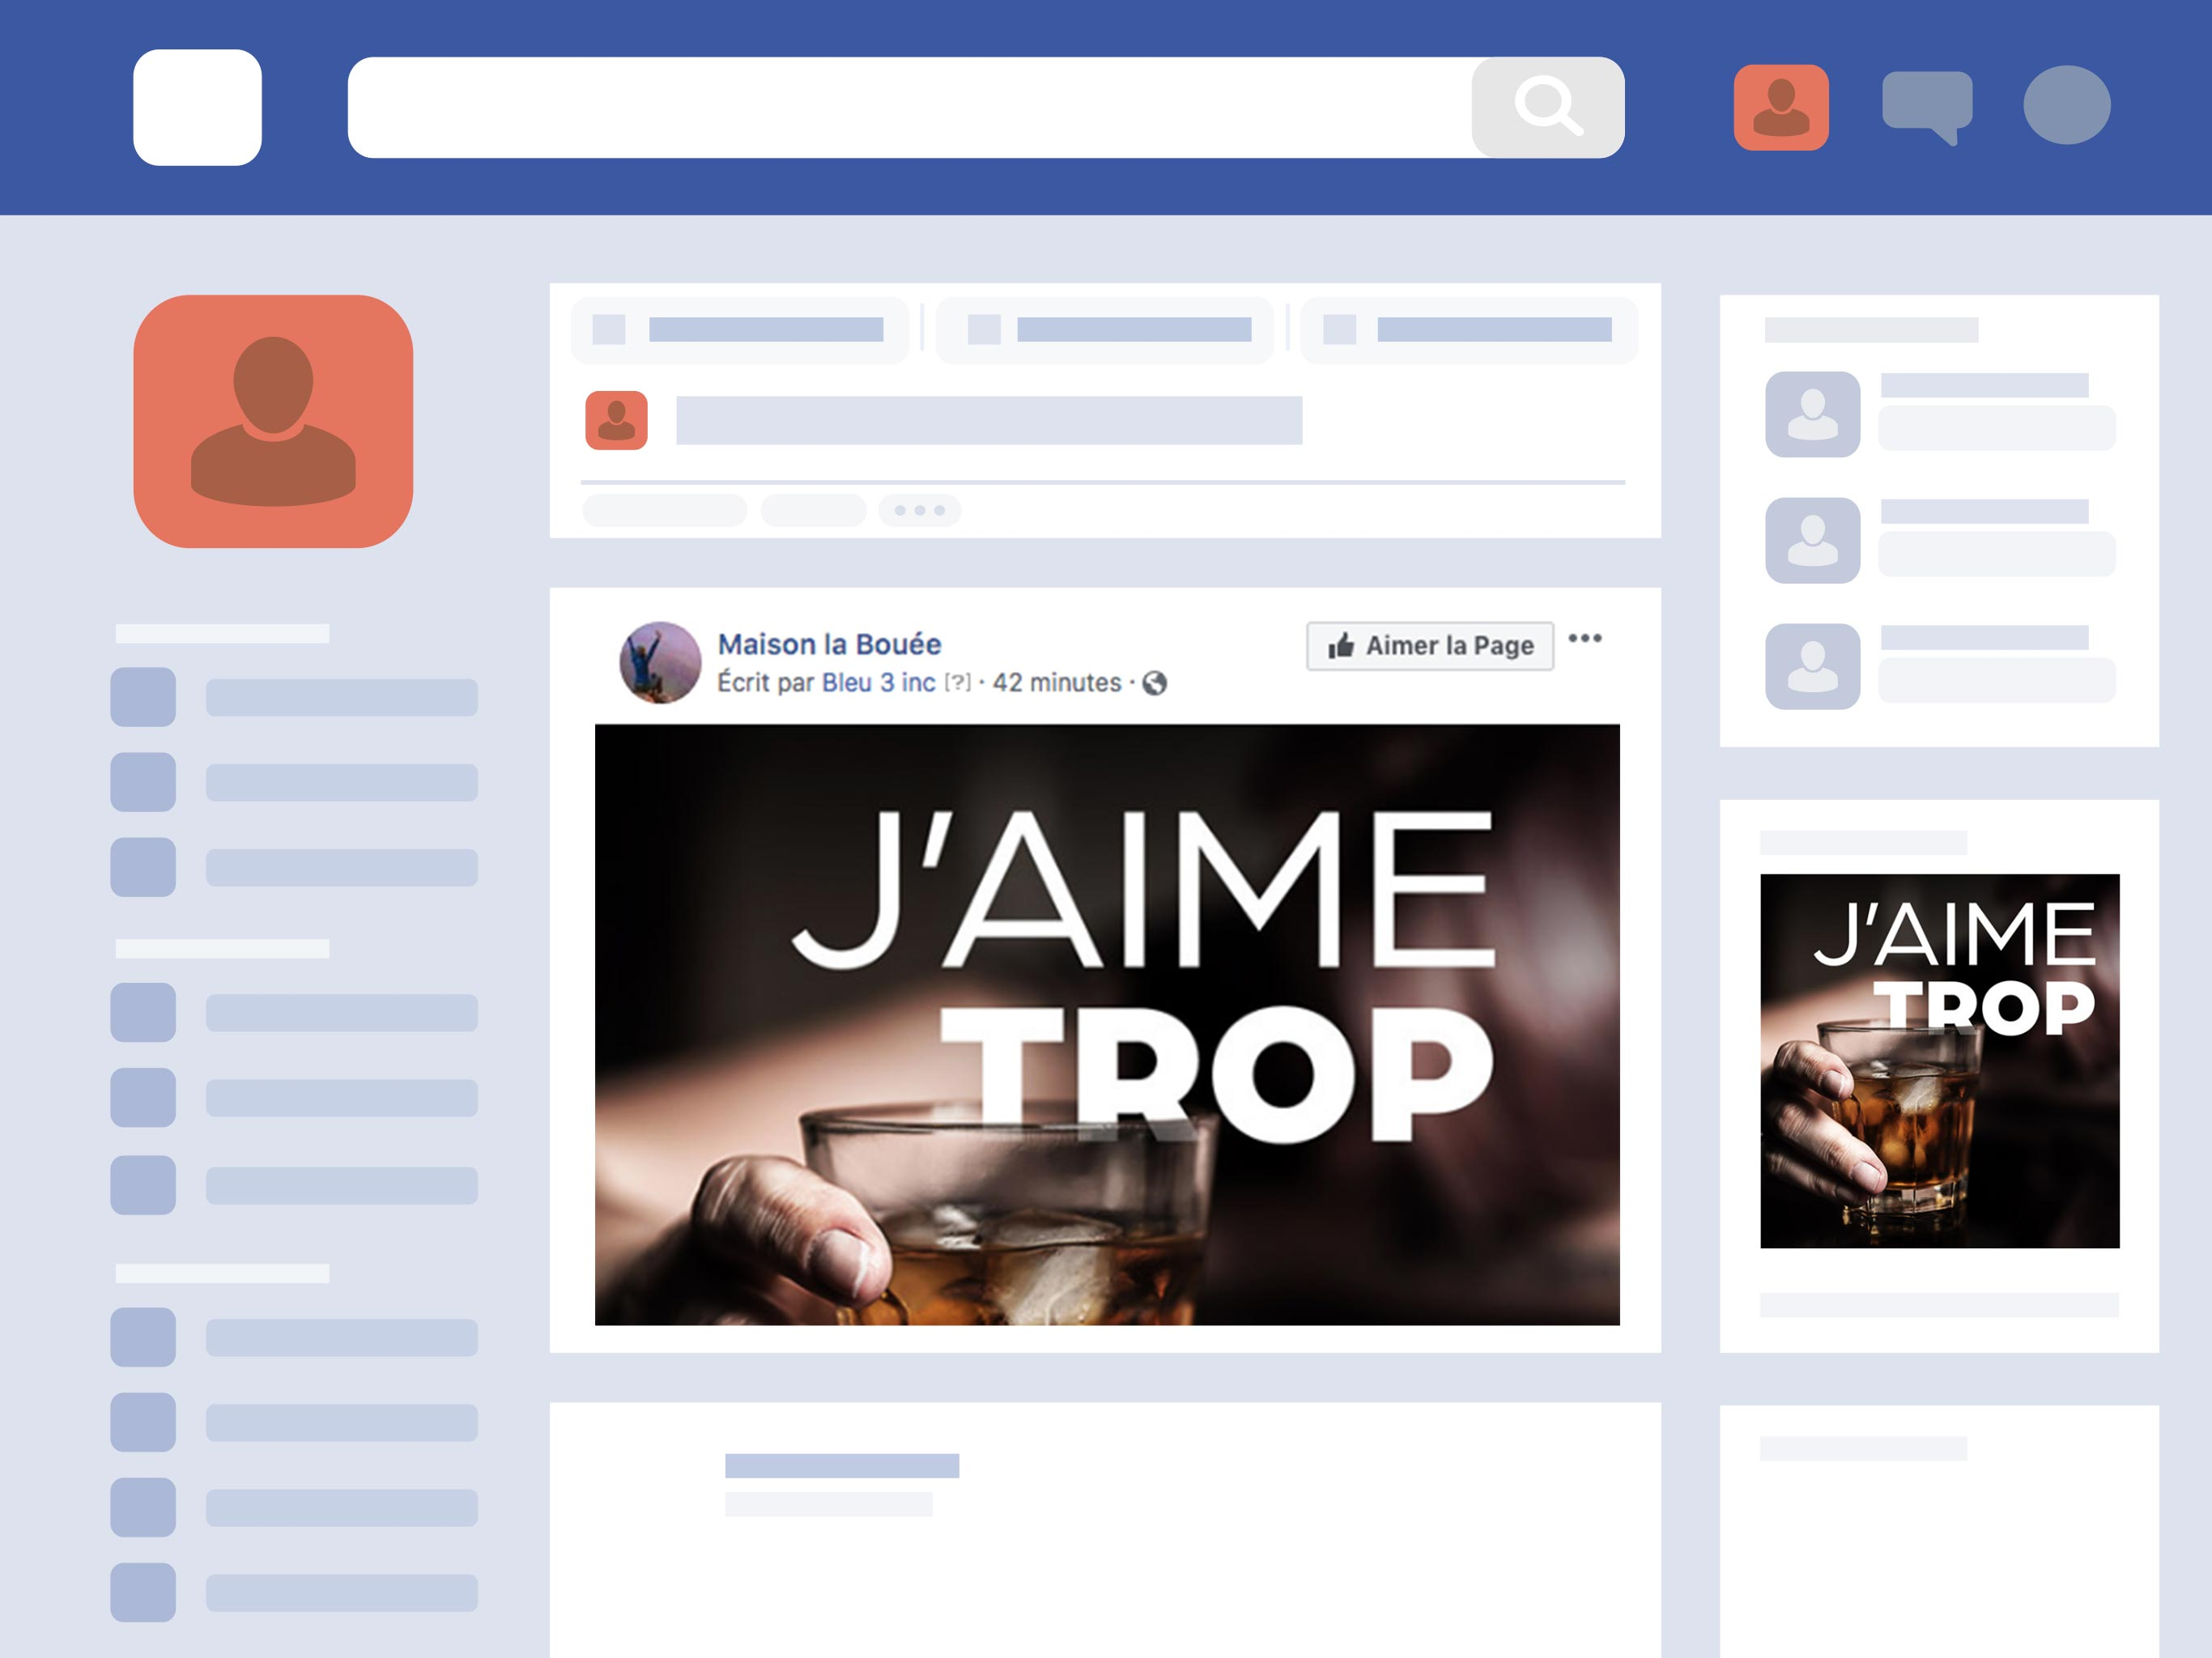 Maison la bouee tablette facebook ads